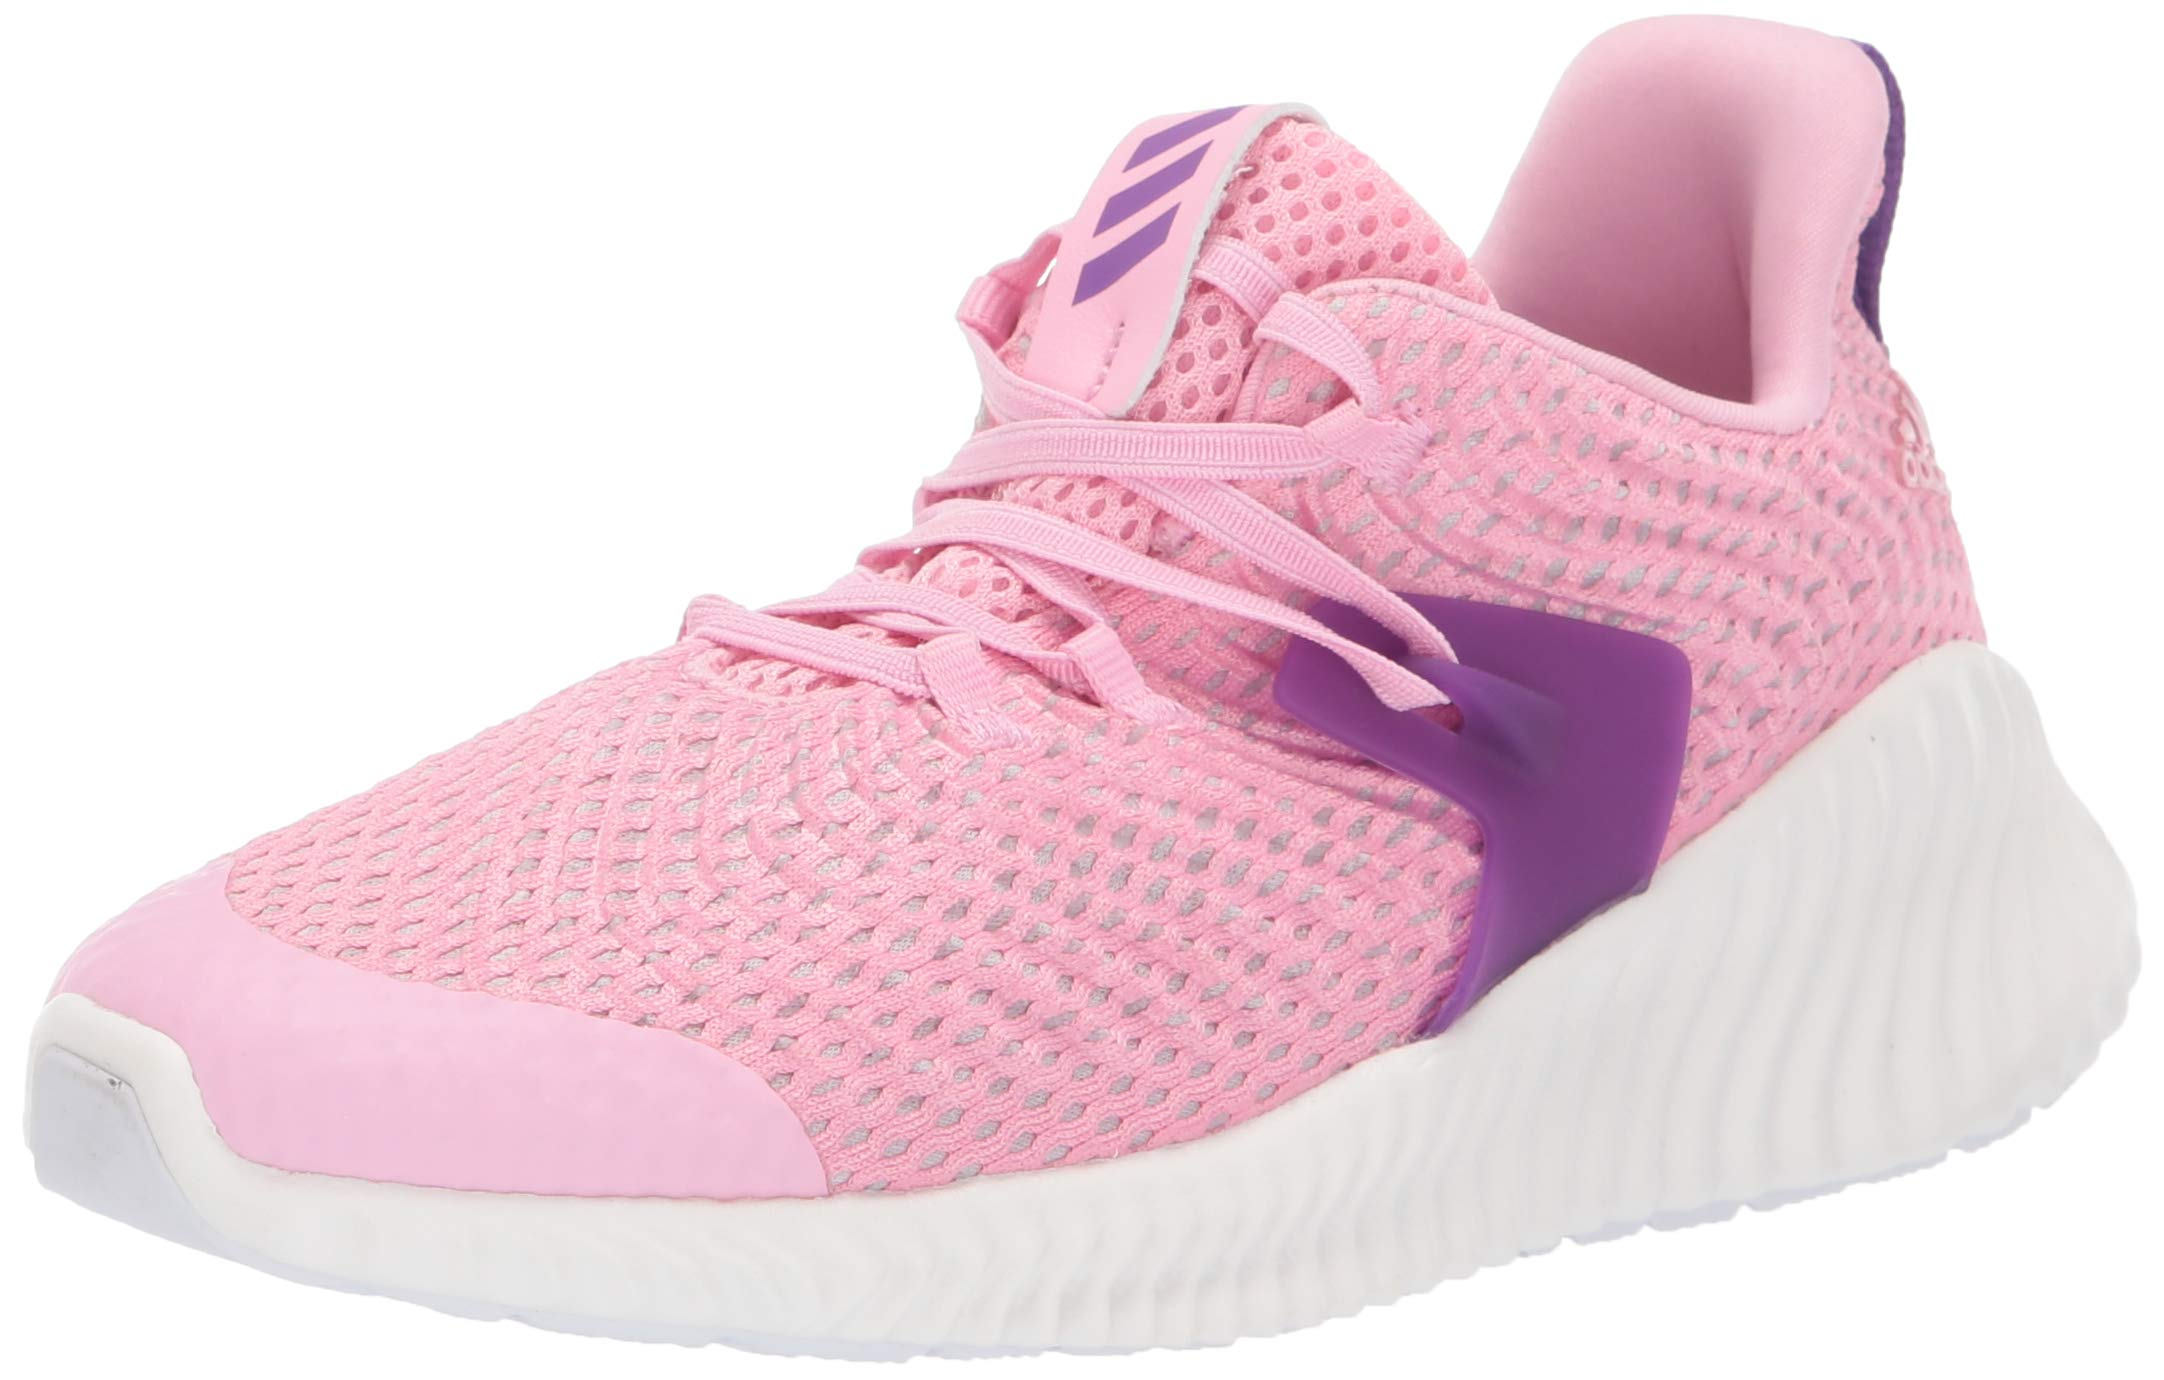 Adidas Kids Alphabounce Instinct, true pink/active purple/cloud white 3 M US Little Kid by adidas (Image #1)